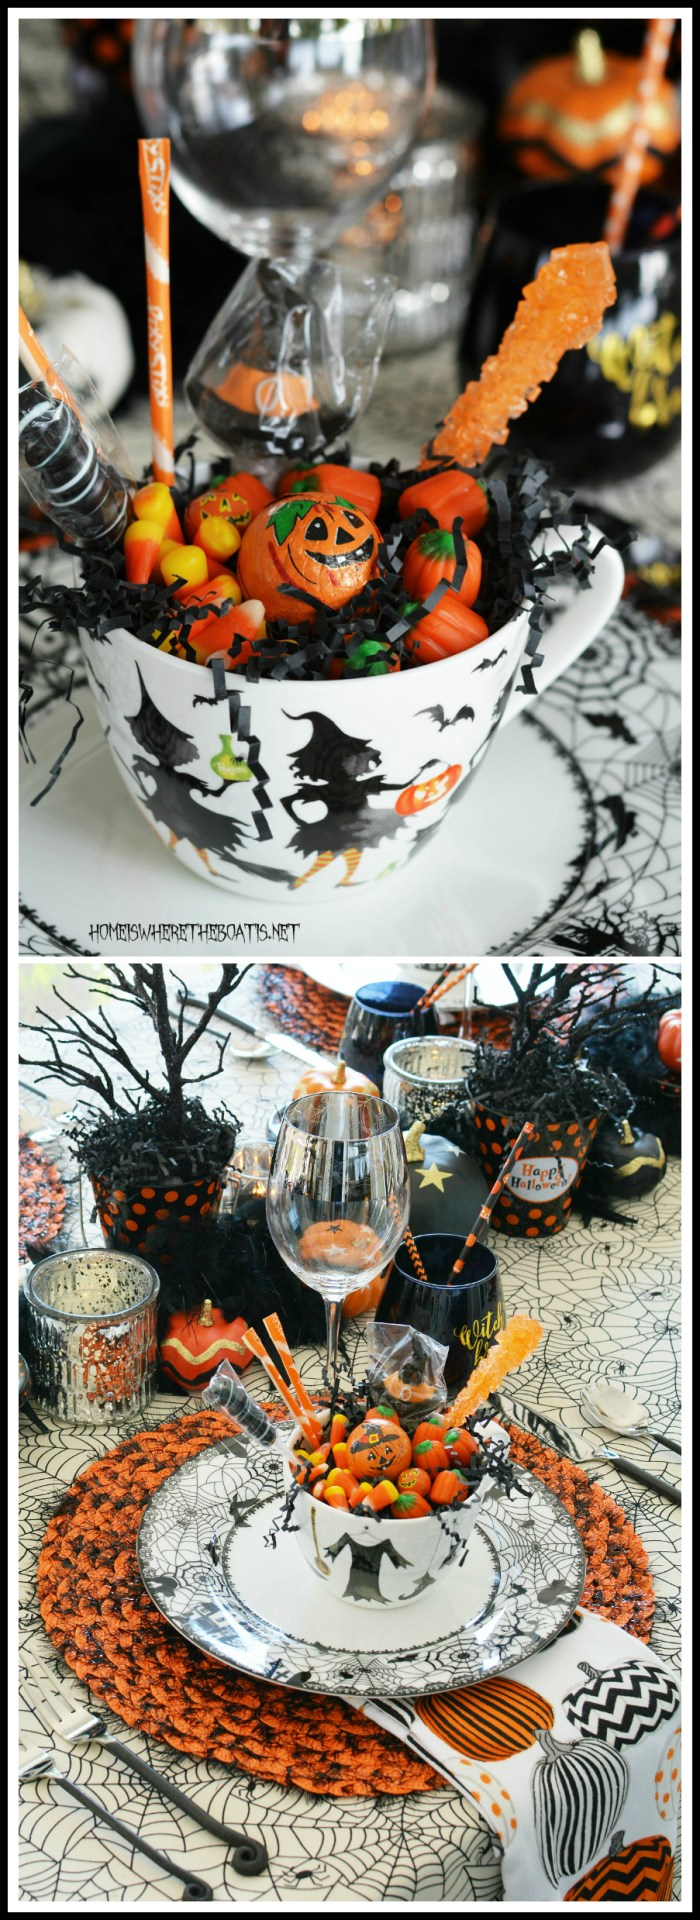 Black Hat Society Halloween Table | ©homeiswheretheboatis.net #witch #tablescape #Halloween #tablesetting